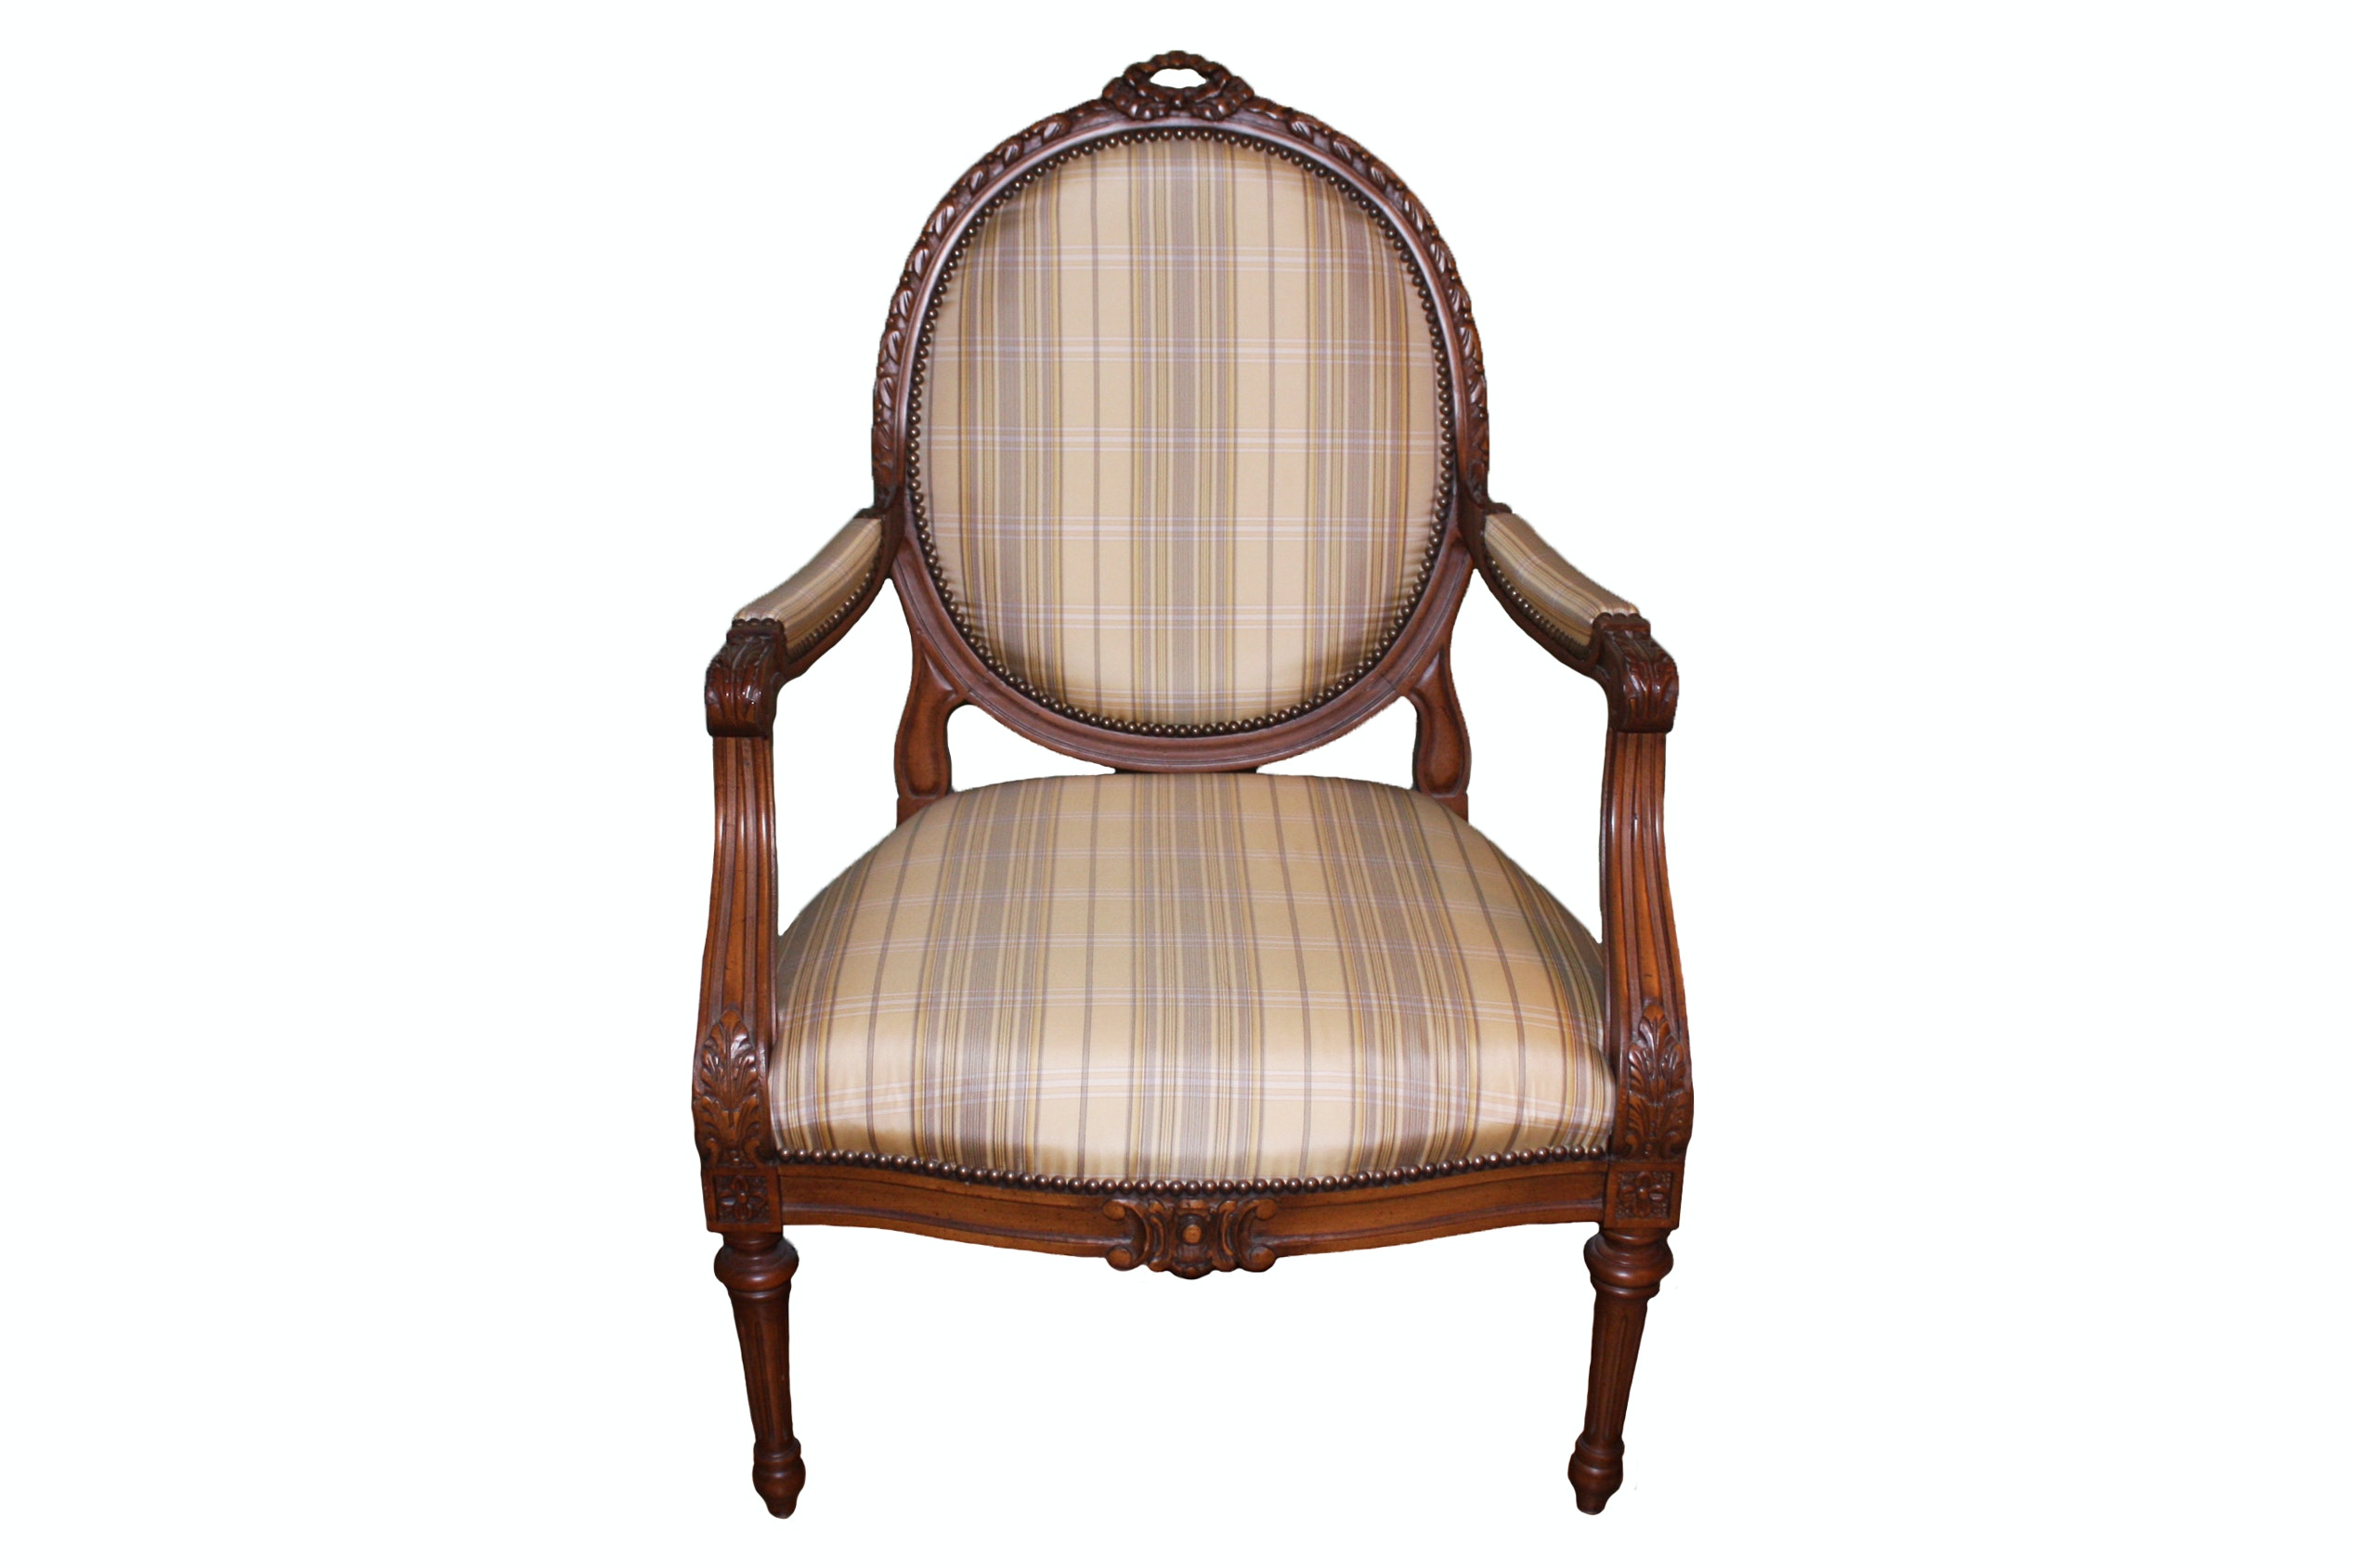 Louis XVI Balloon Back Chair by Isenhour Furniture